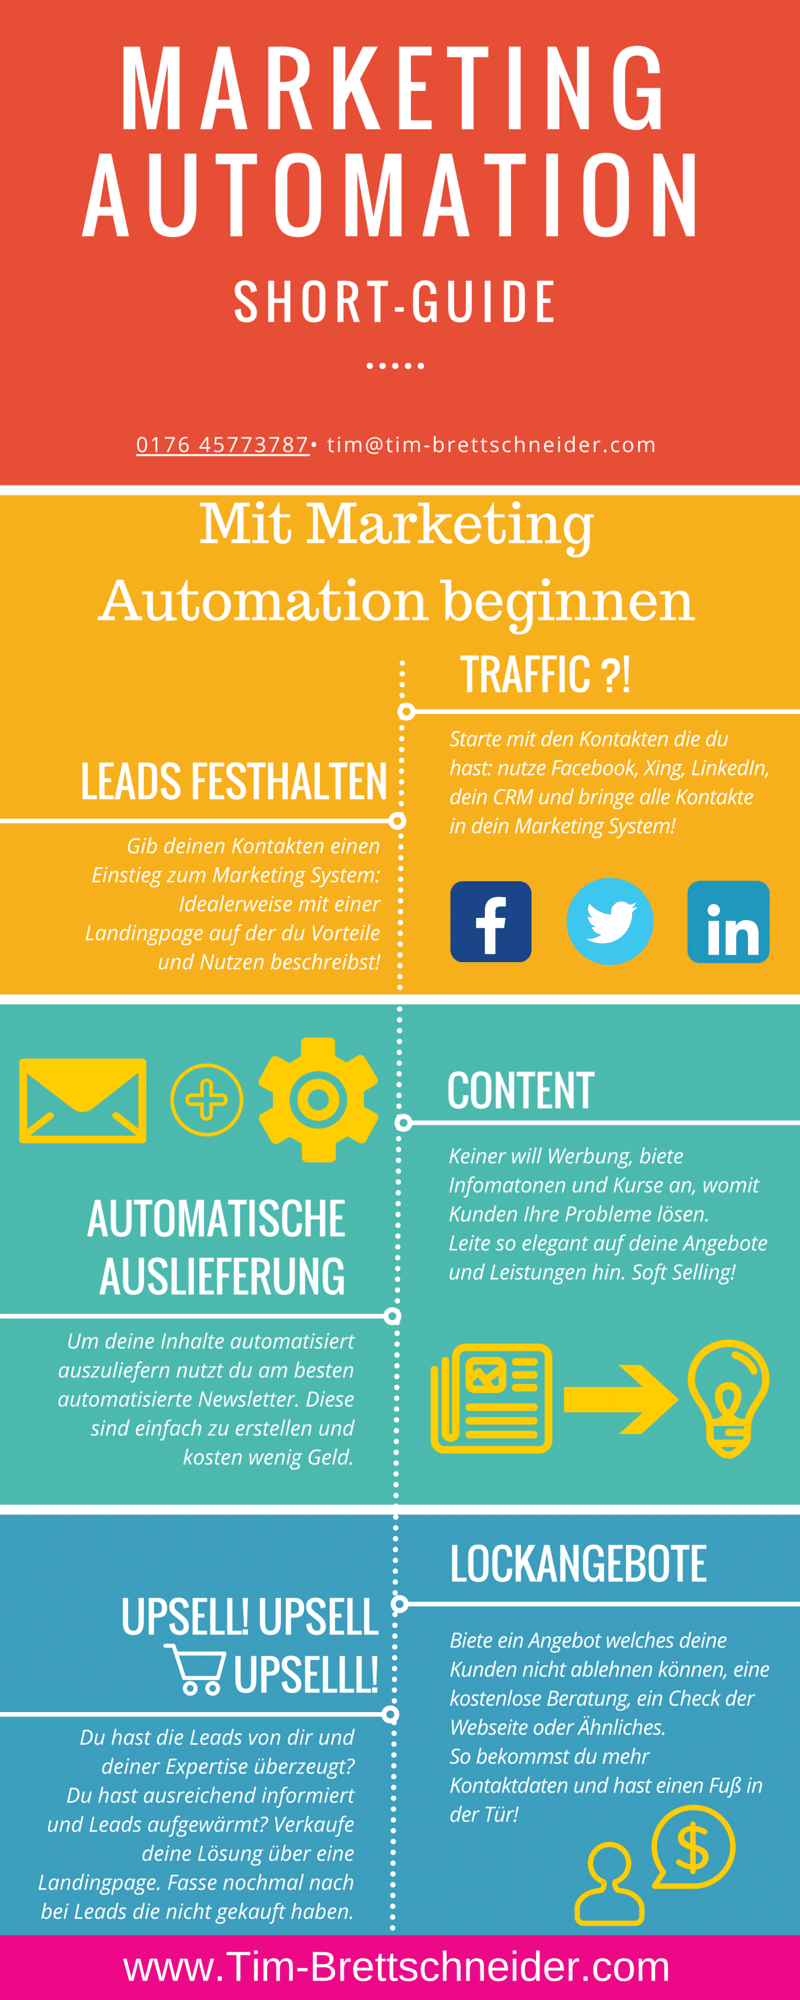 Infografik Marketing Automation für Anfänger